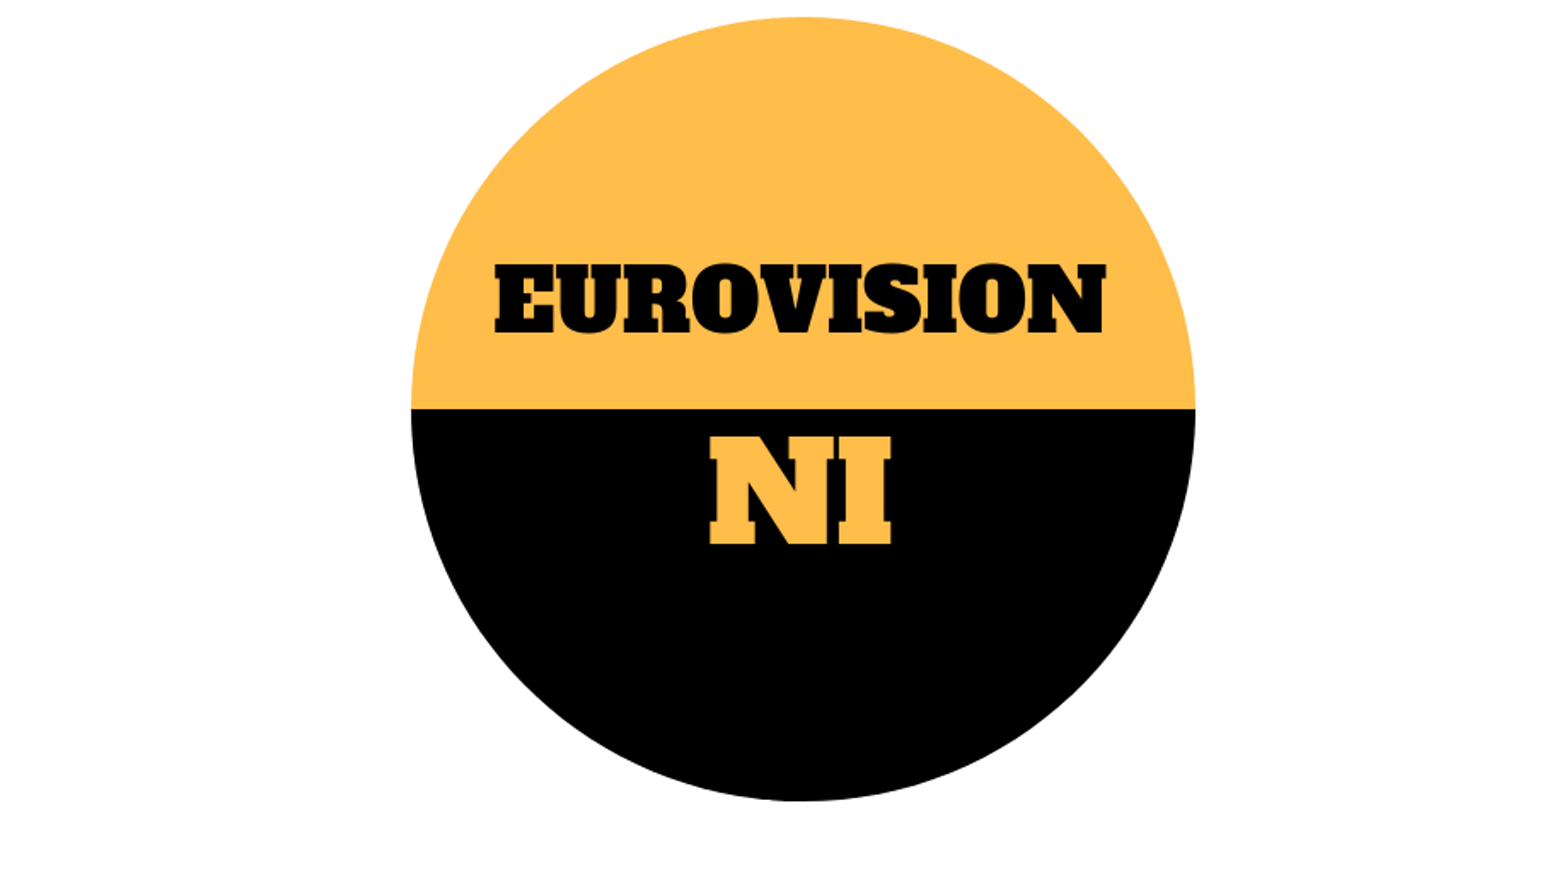 Help me to bring a fun Eurovision themed event to fans of the Contest in Belfast and the surrounding area!